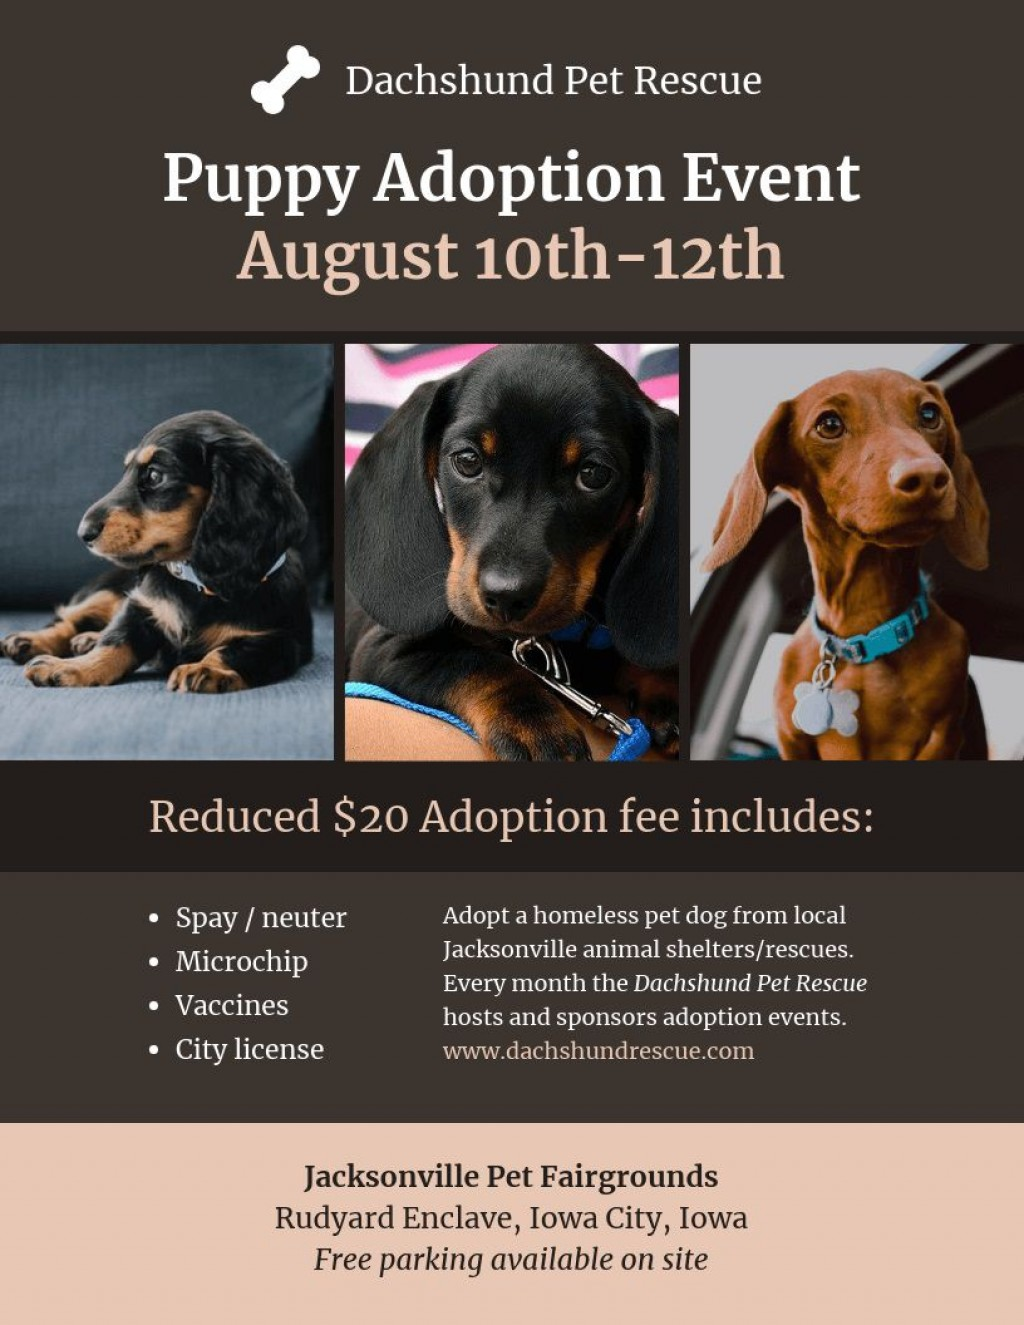 001 Awesome Pet Adoption Flyer Template Concept  Free Event DogLarge